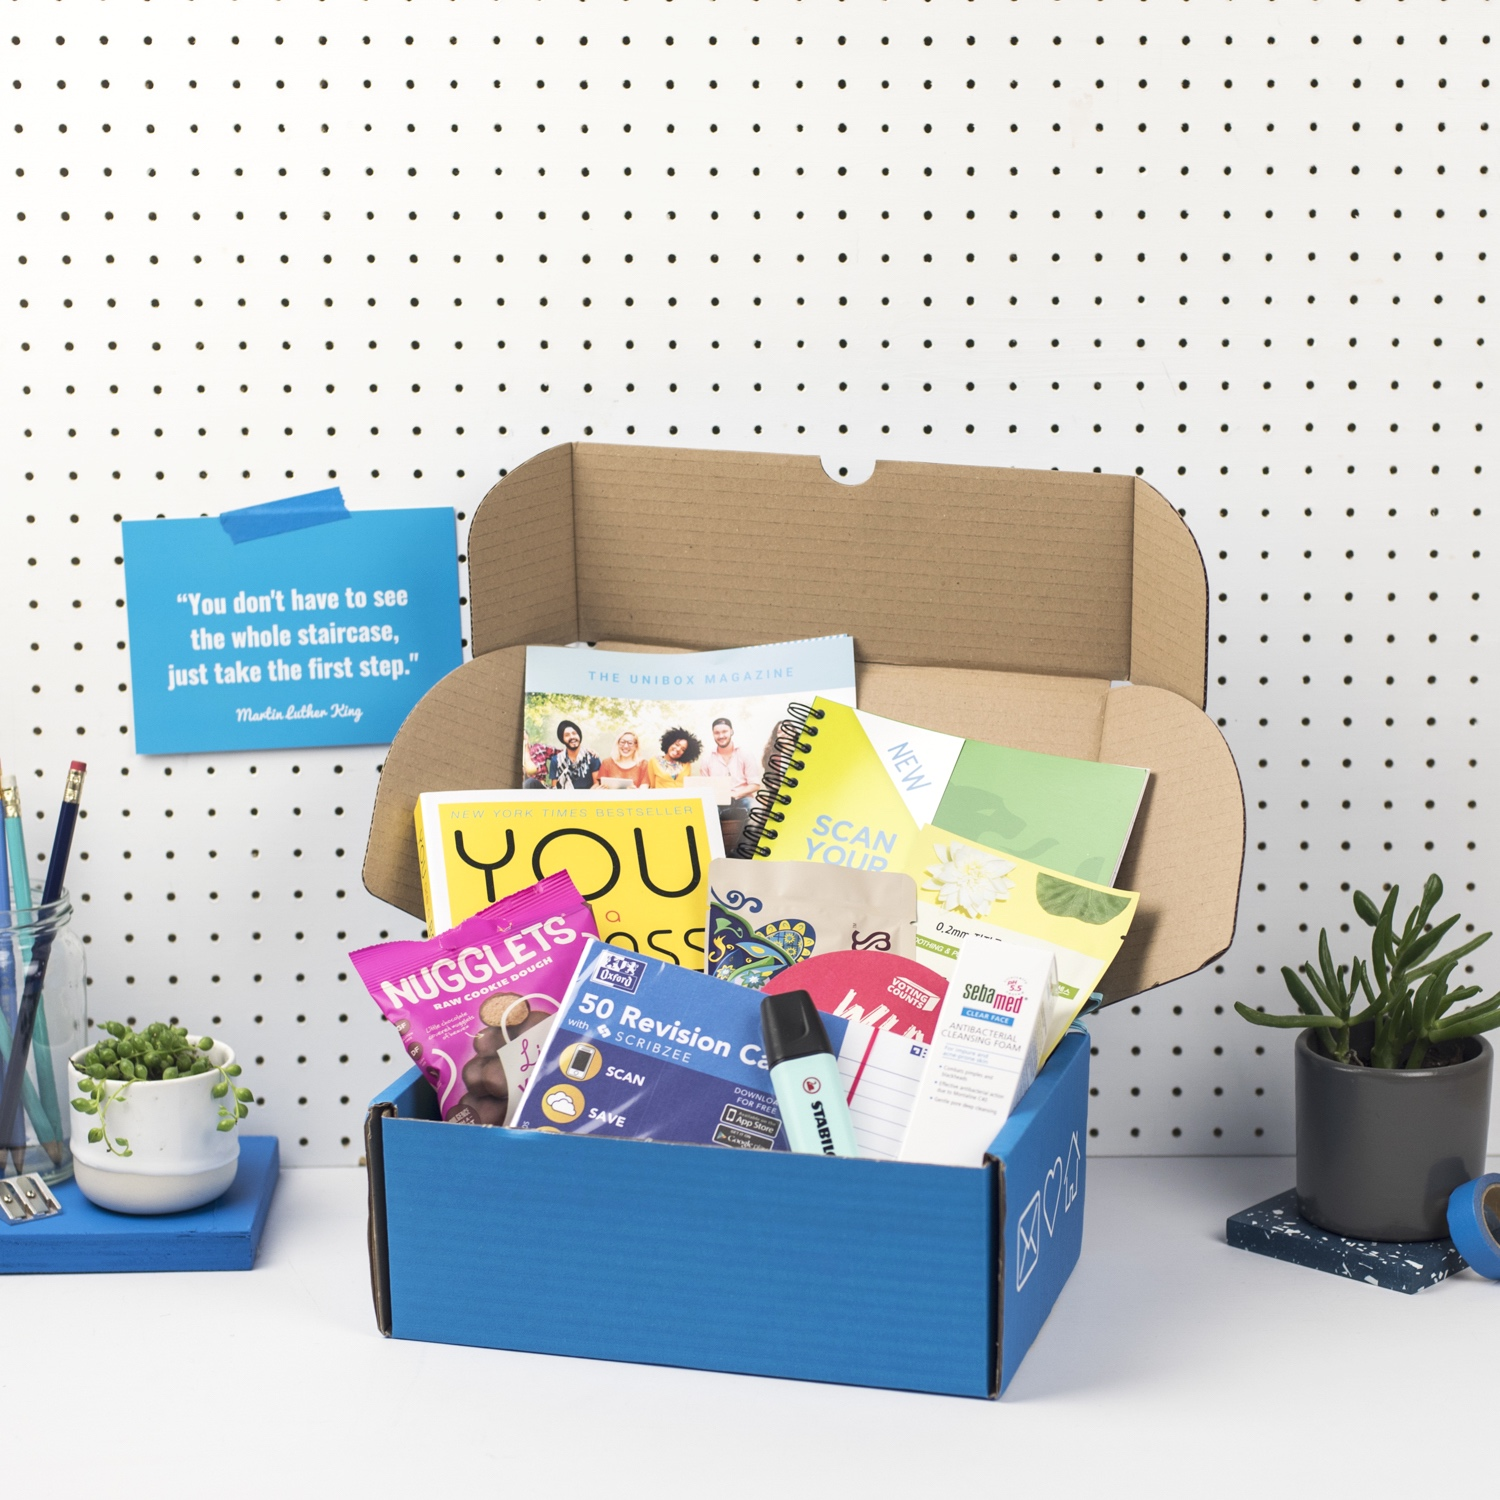 Unibox-Subscription-Box.jpg